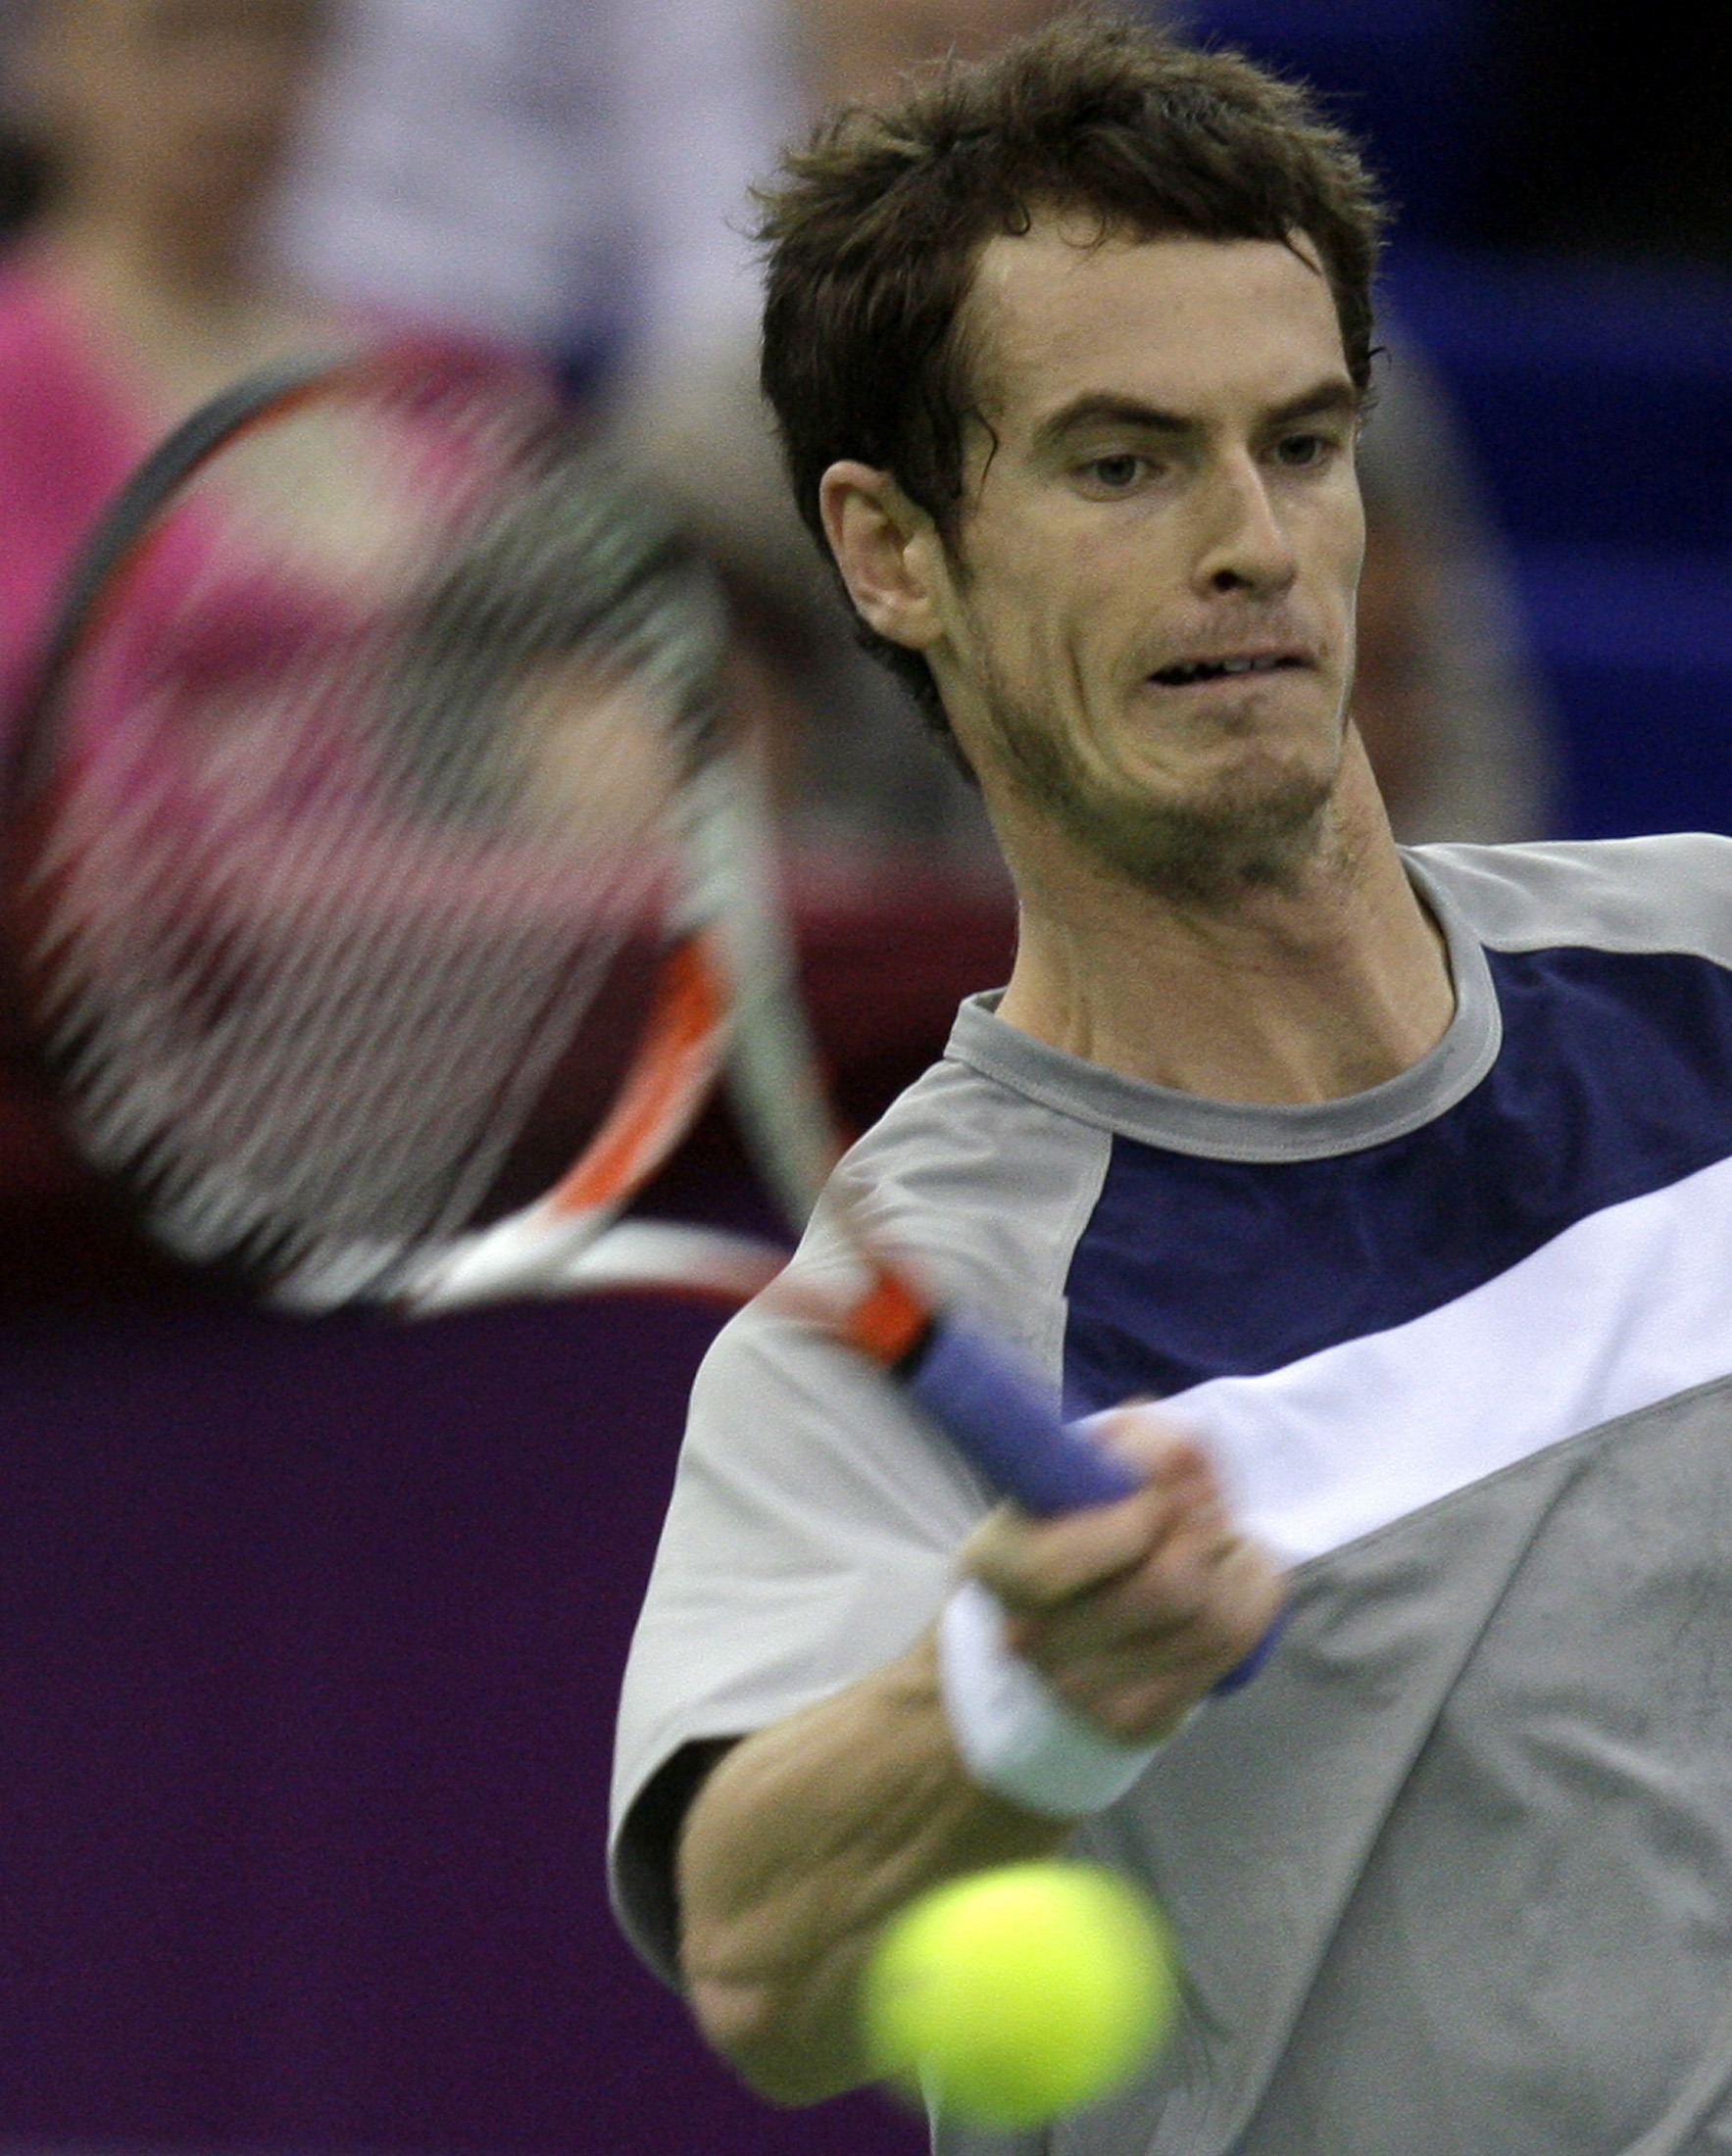 Britain's Andy Murray returns the ball to Kazakhstan's Andrey Golubev during their final match at St.Petersburg, Russia on Sunday.